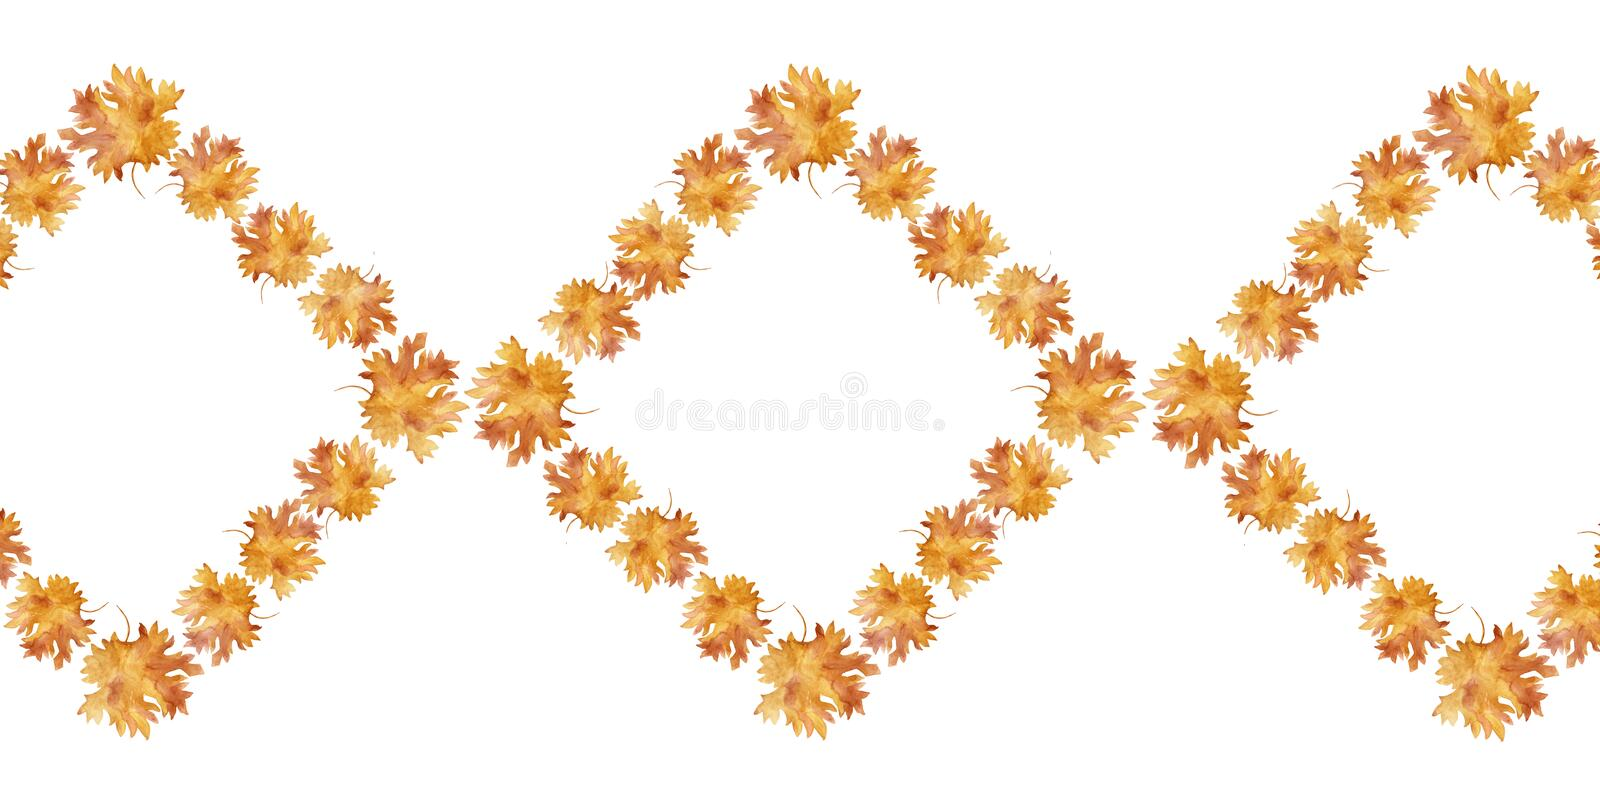 Watercolor diamond shaped frame colorful autumn maple leaves in a round dance isolated on white background. Flower pattern for beautiful wedding invitation stock illustration